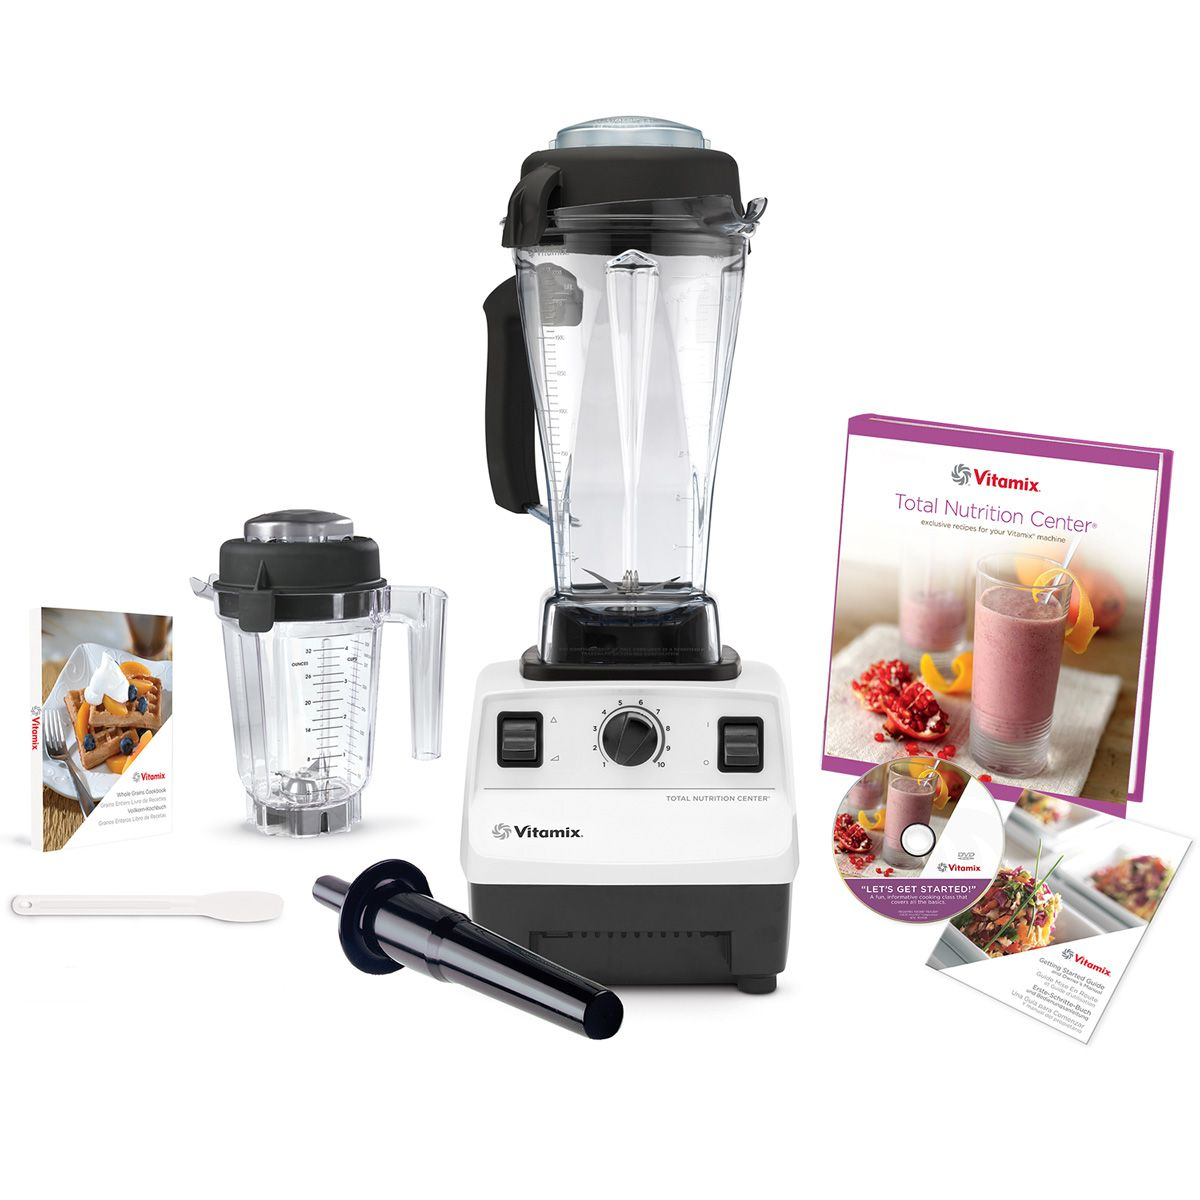 Costco Uk White Vitamix Blender Extra Mini Dry Container Instruction Dvd Recipe